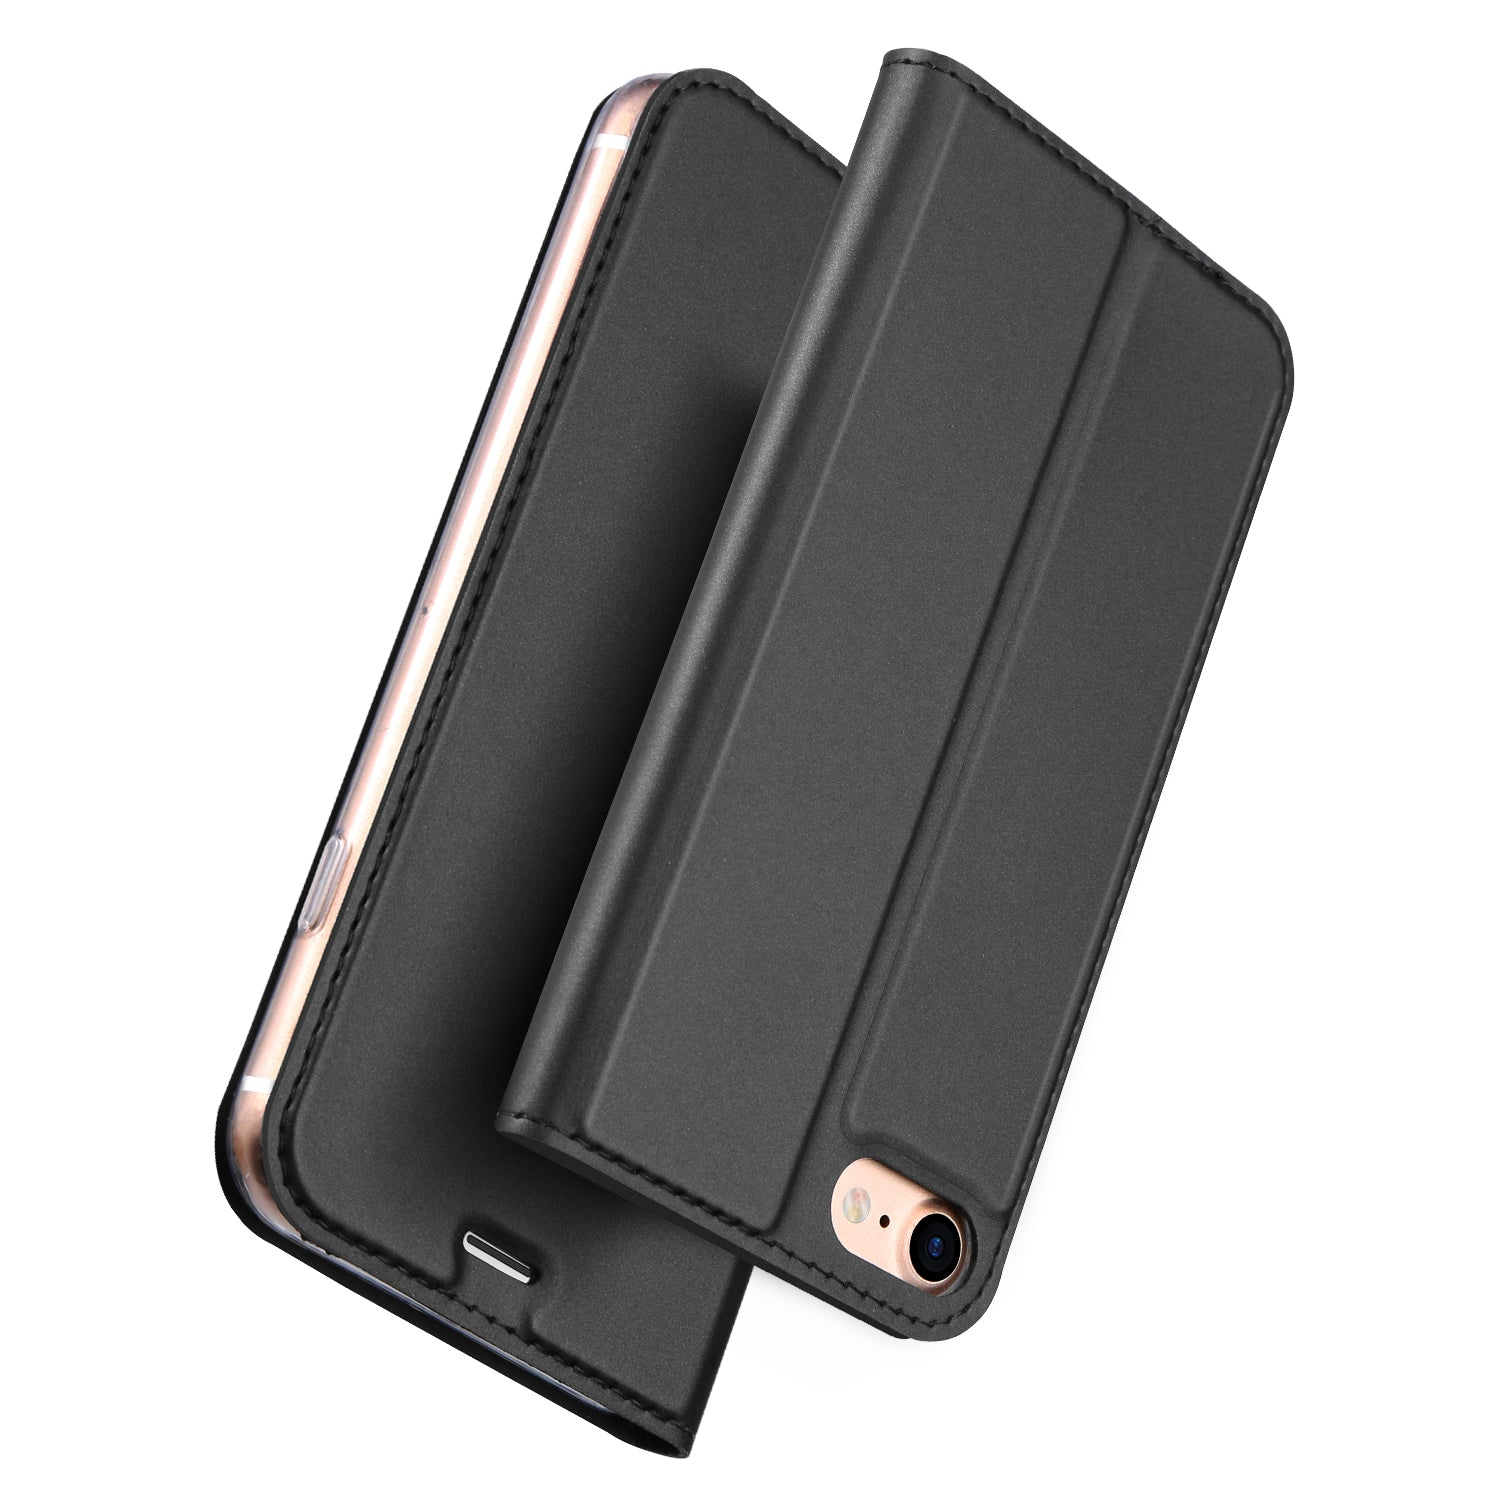 Skin Pro Series slim leather flip wallet card slot iPhone 6 6s Case 3eecbc0108a31